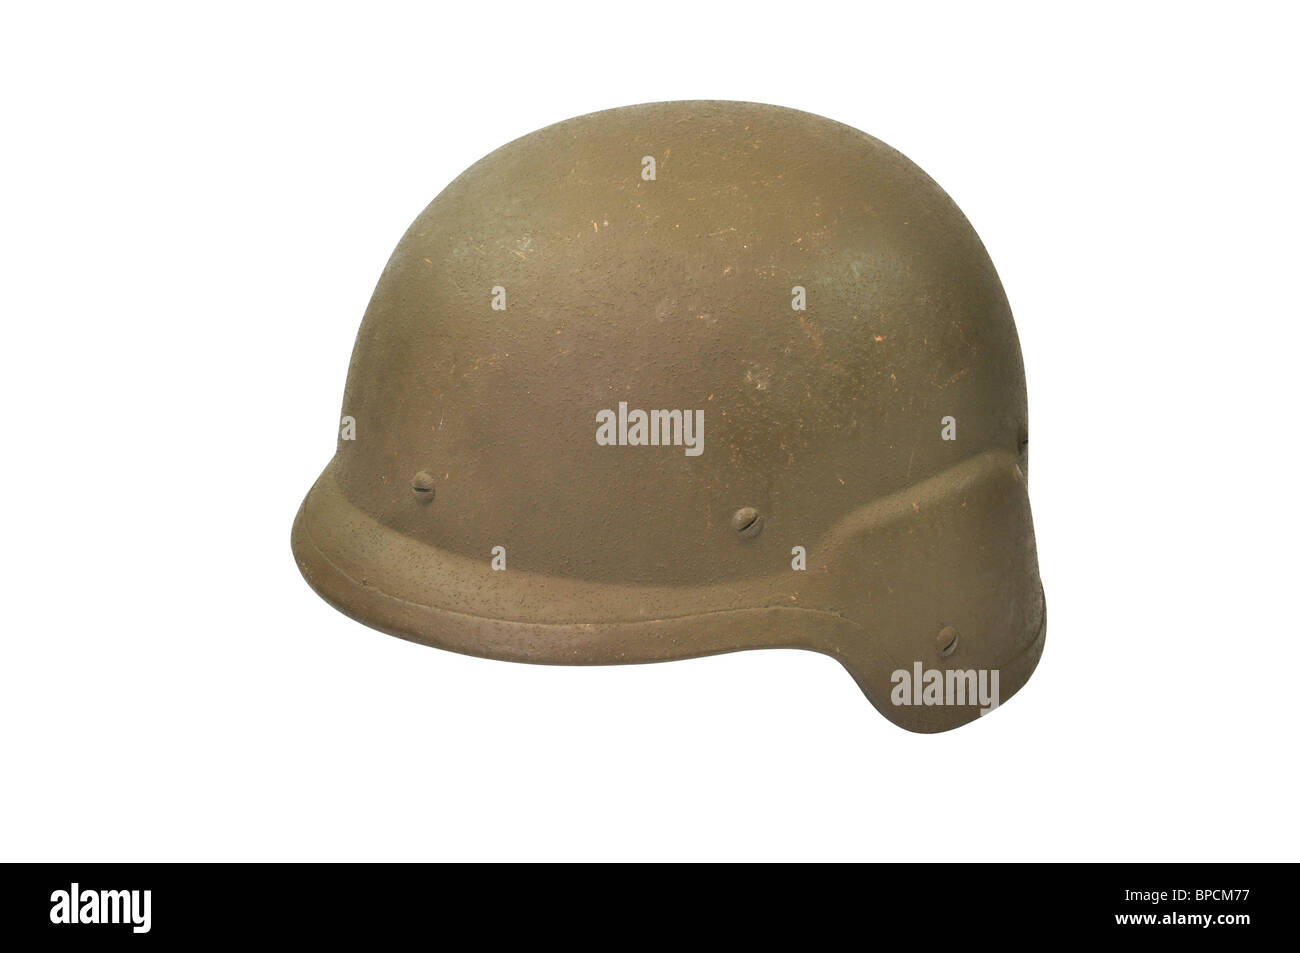 Barbed Wire All American Army Helmet Center Wiring Cable H07vk H07vu H07vr H05vk China House Kevlar Stock Photos Images Alamy Rh Com Drawing